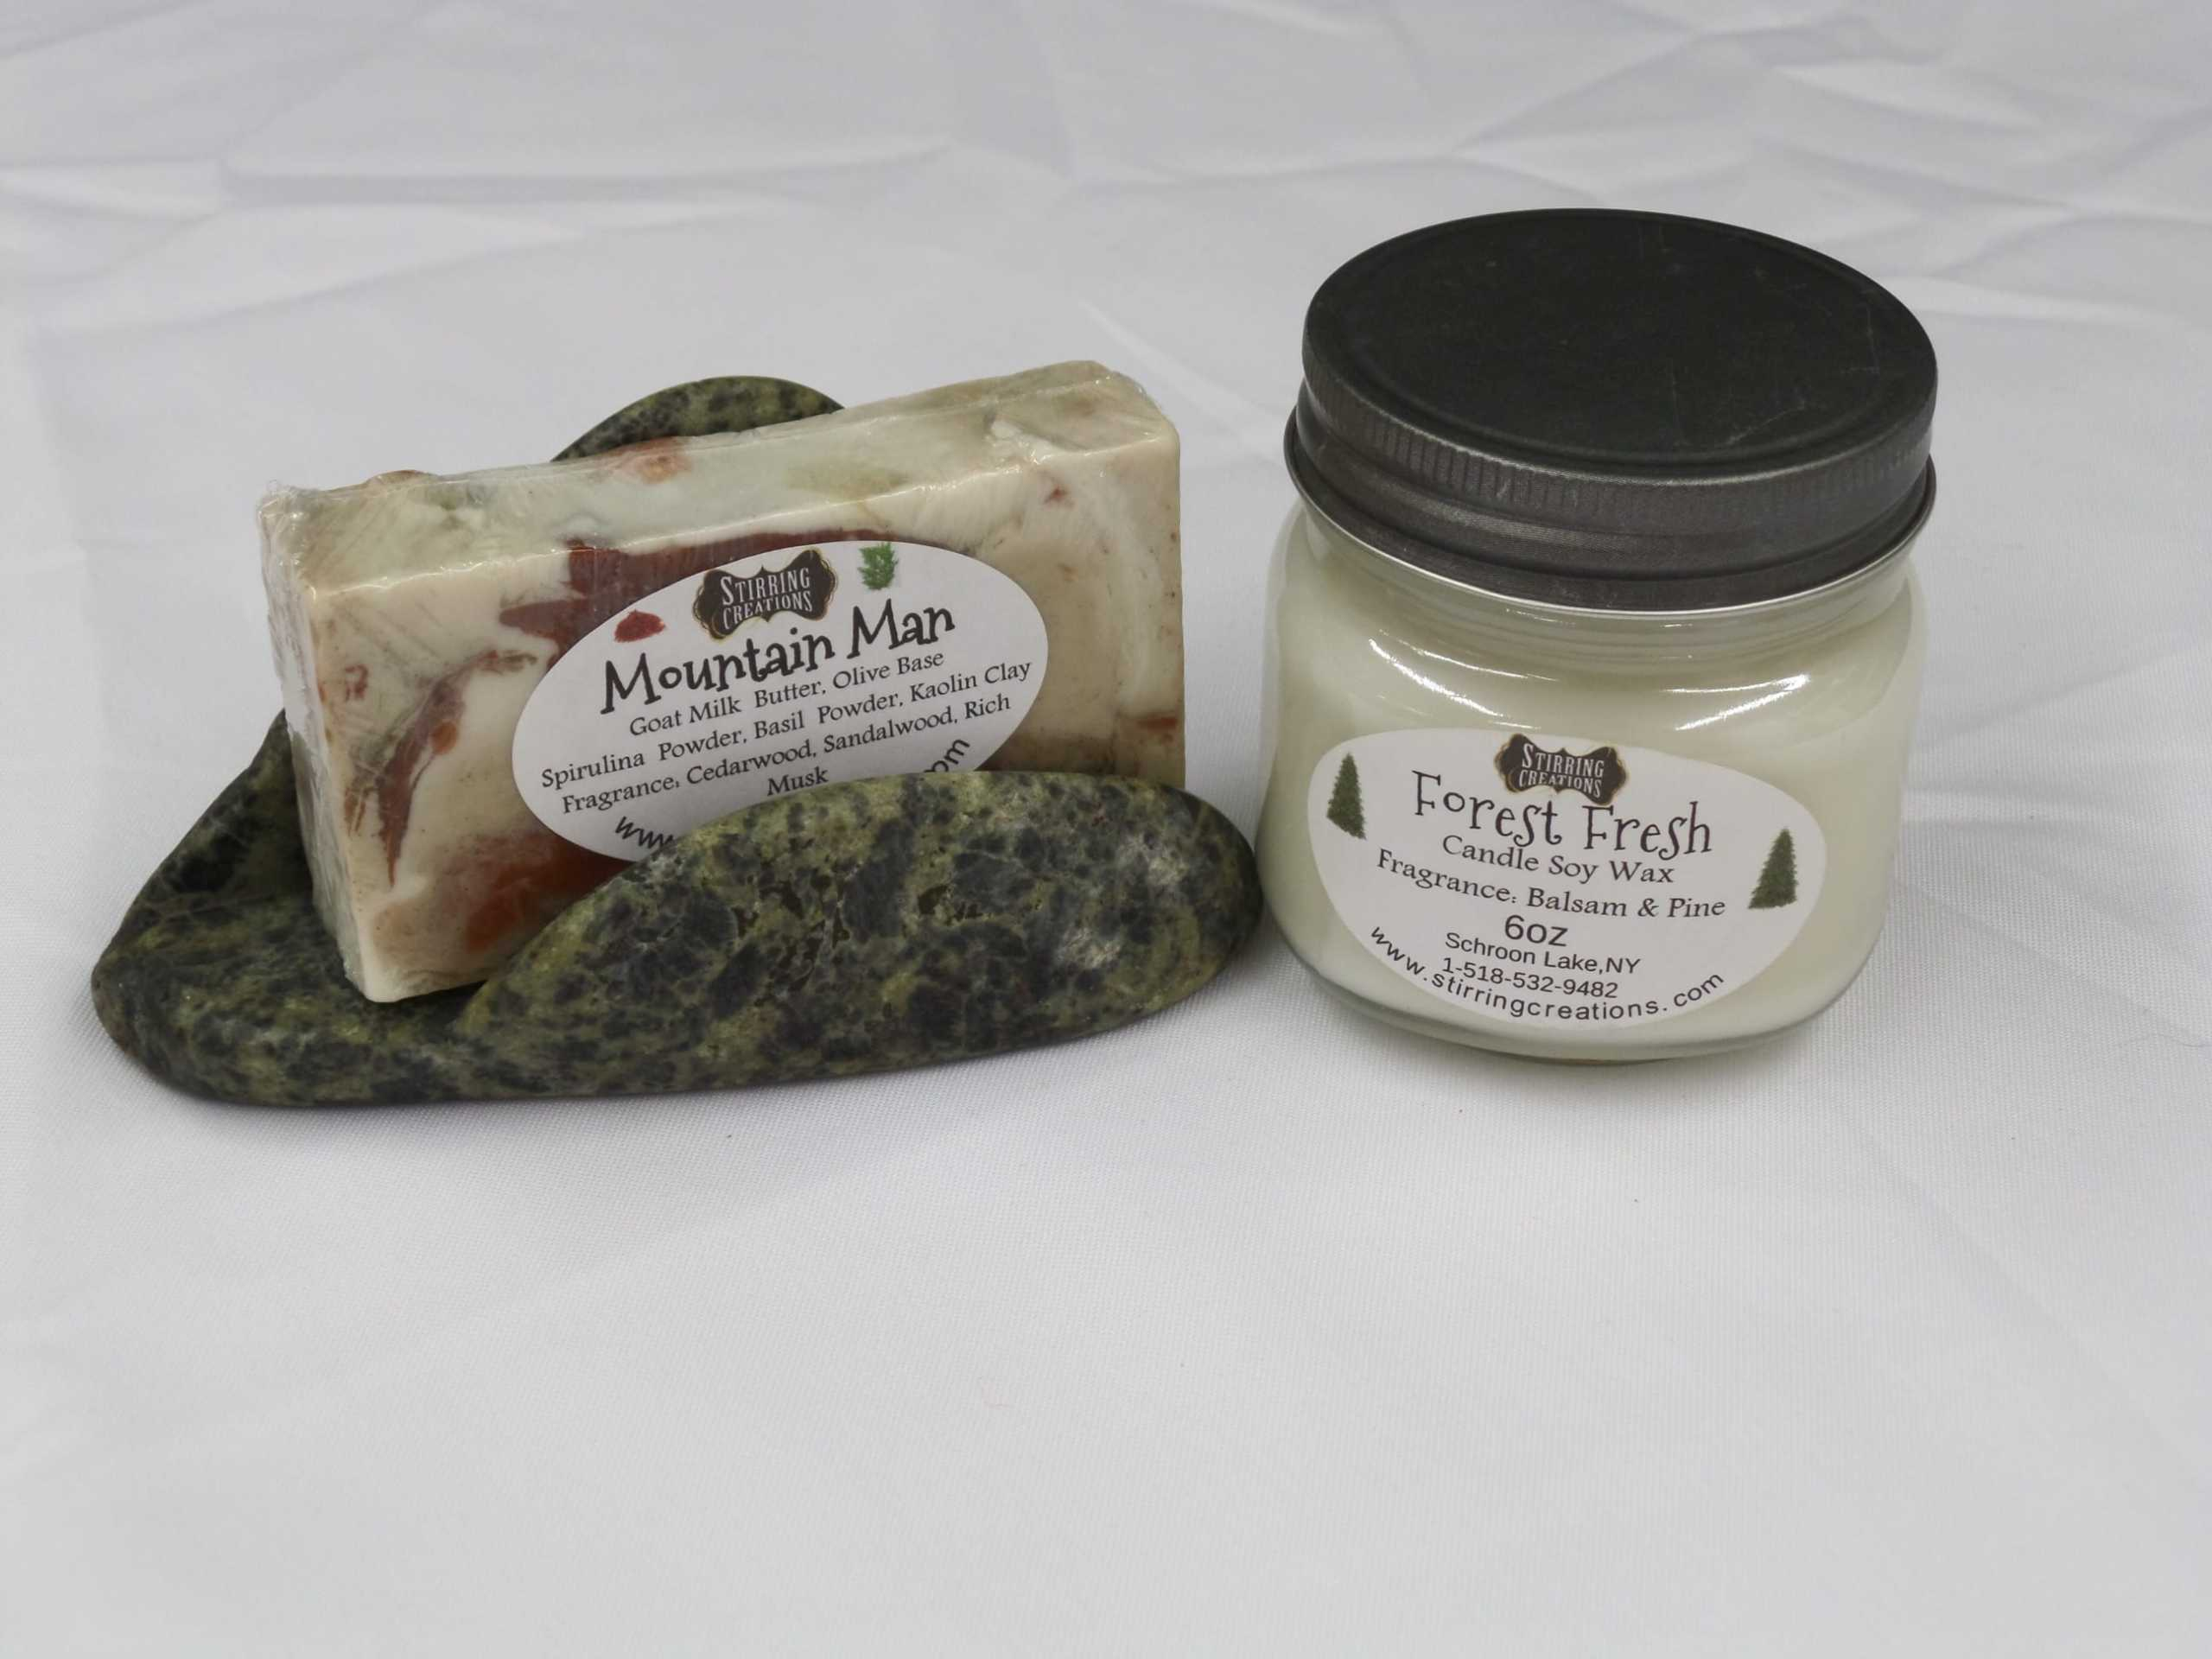 STONE GIFT SET <br/> Donated by: STIRRING CREATIONS <br/> Valued at: $41